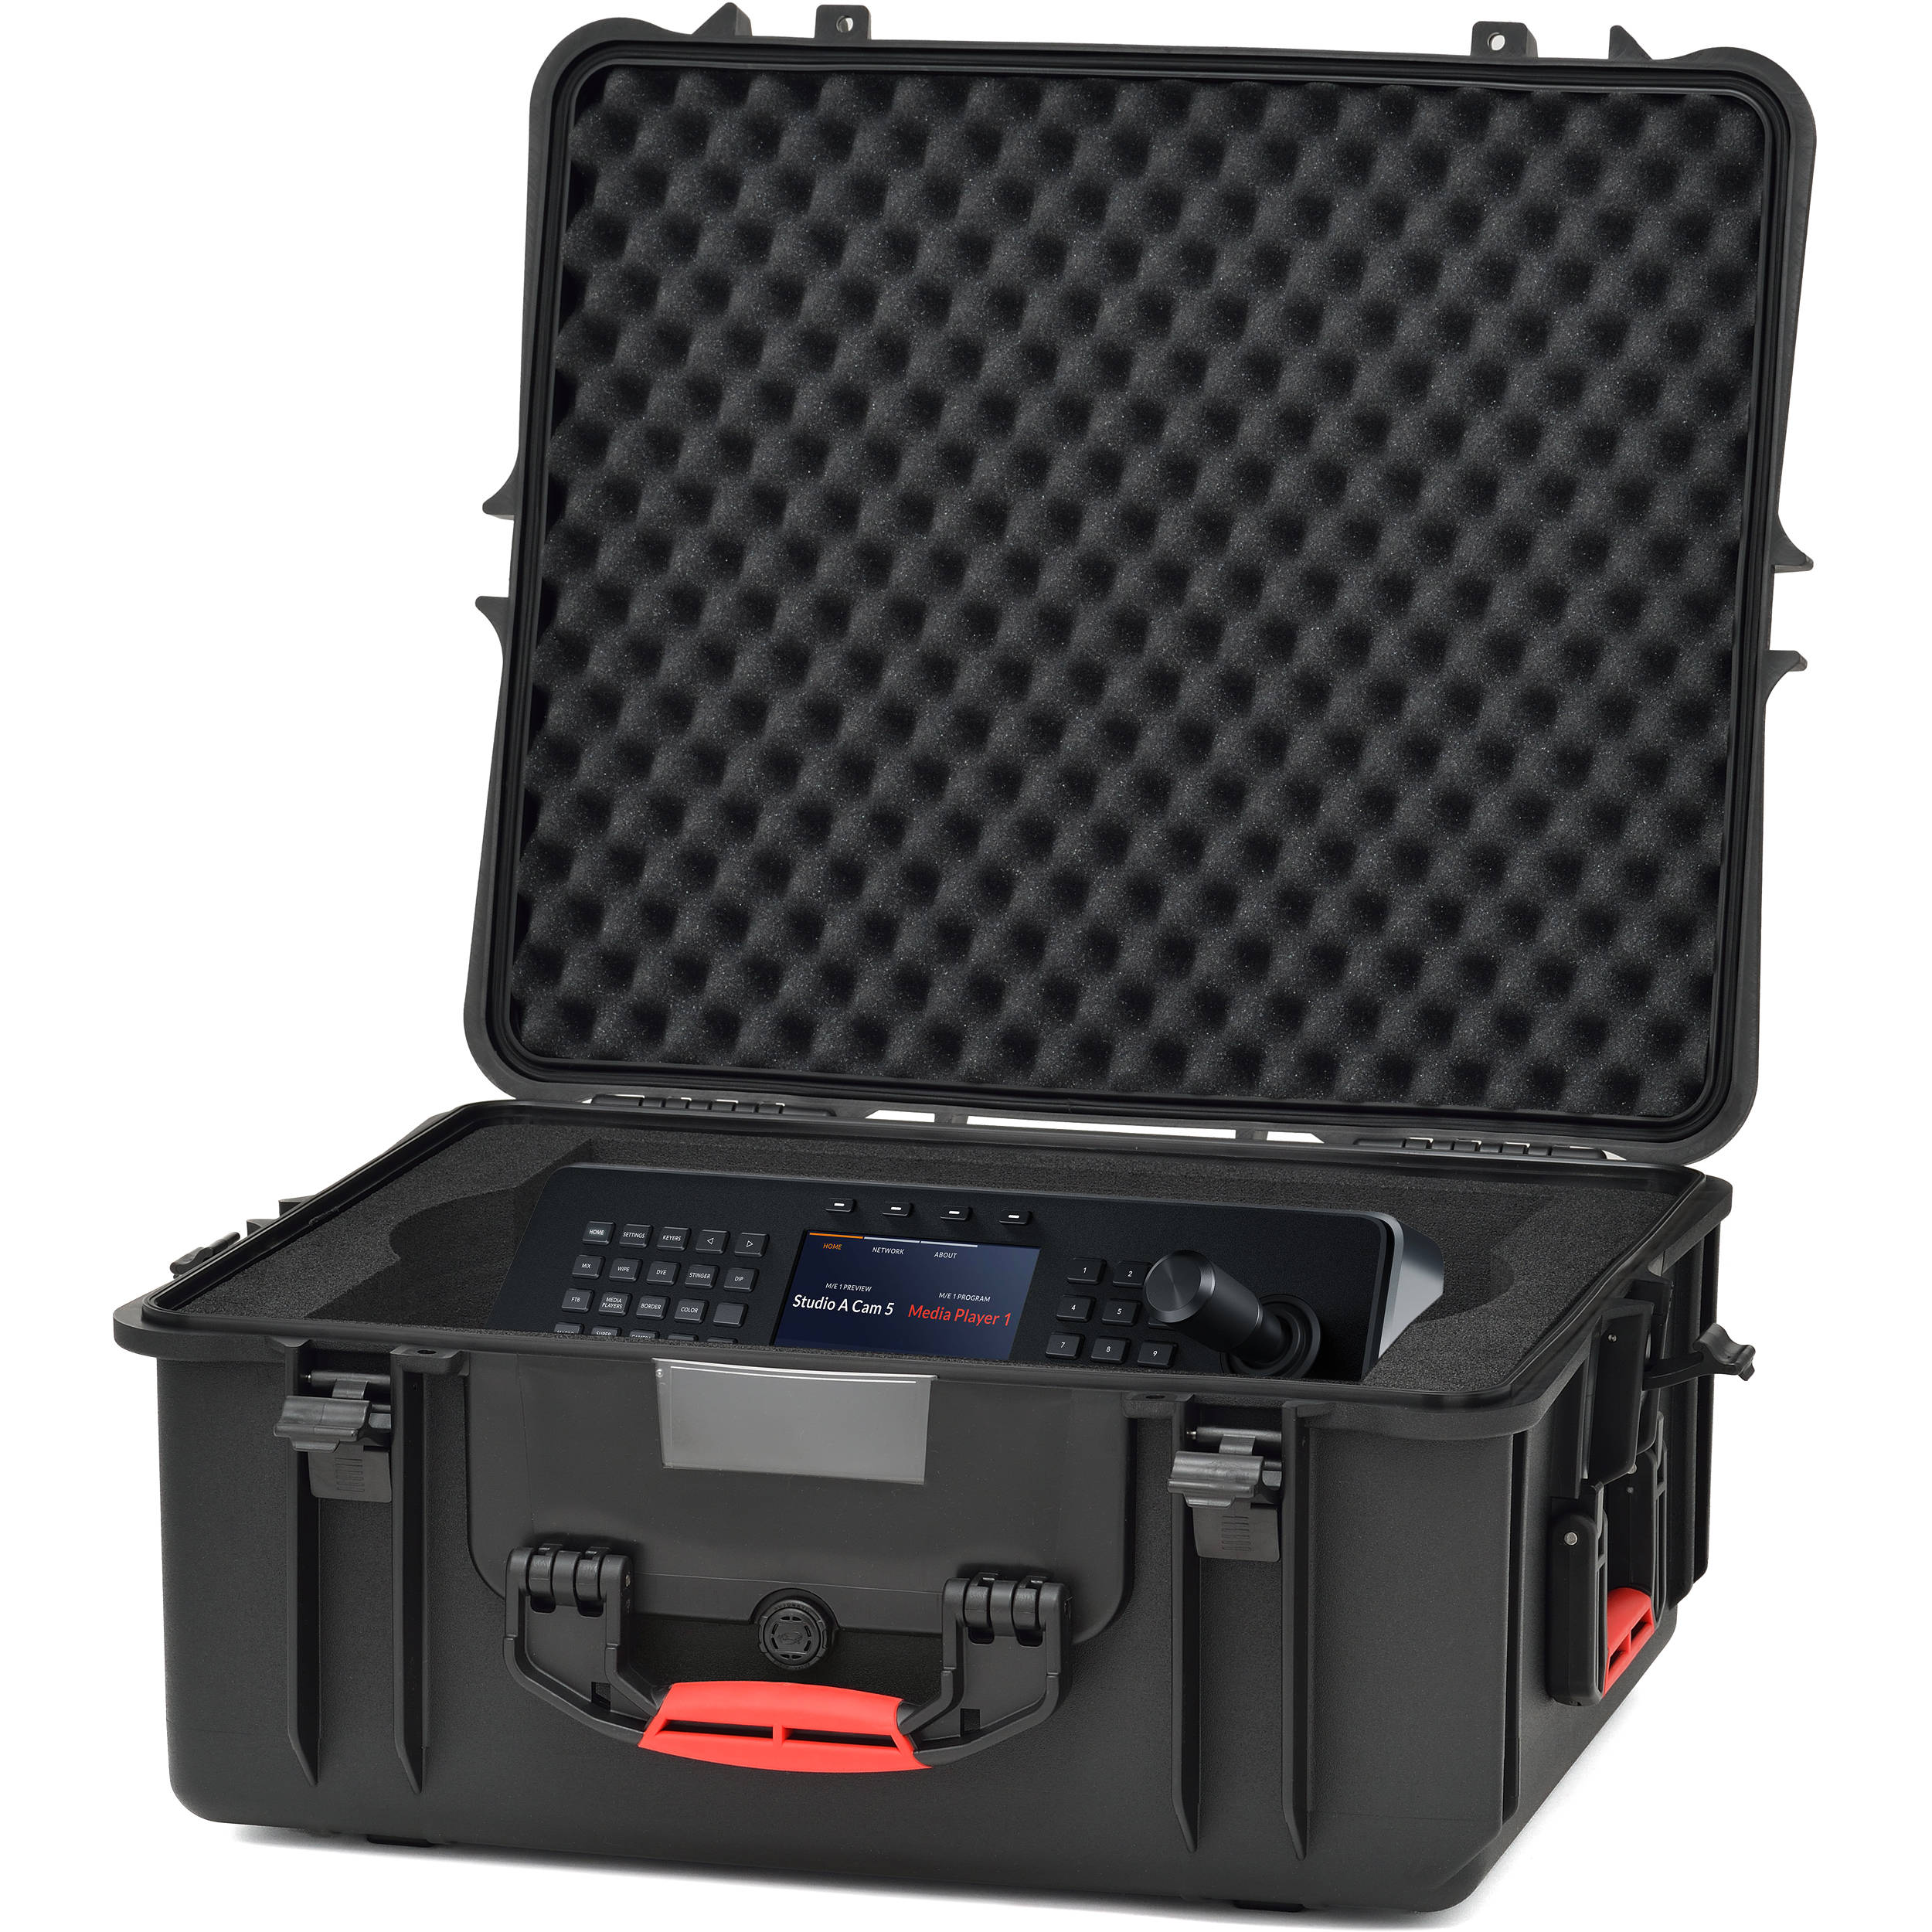 HPRC 2710 Hard Case with Foam for Black Magic ATEM 1 M/E + Accessories